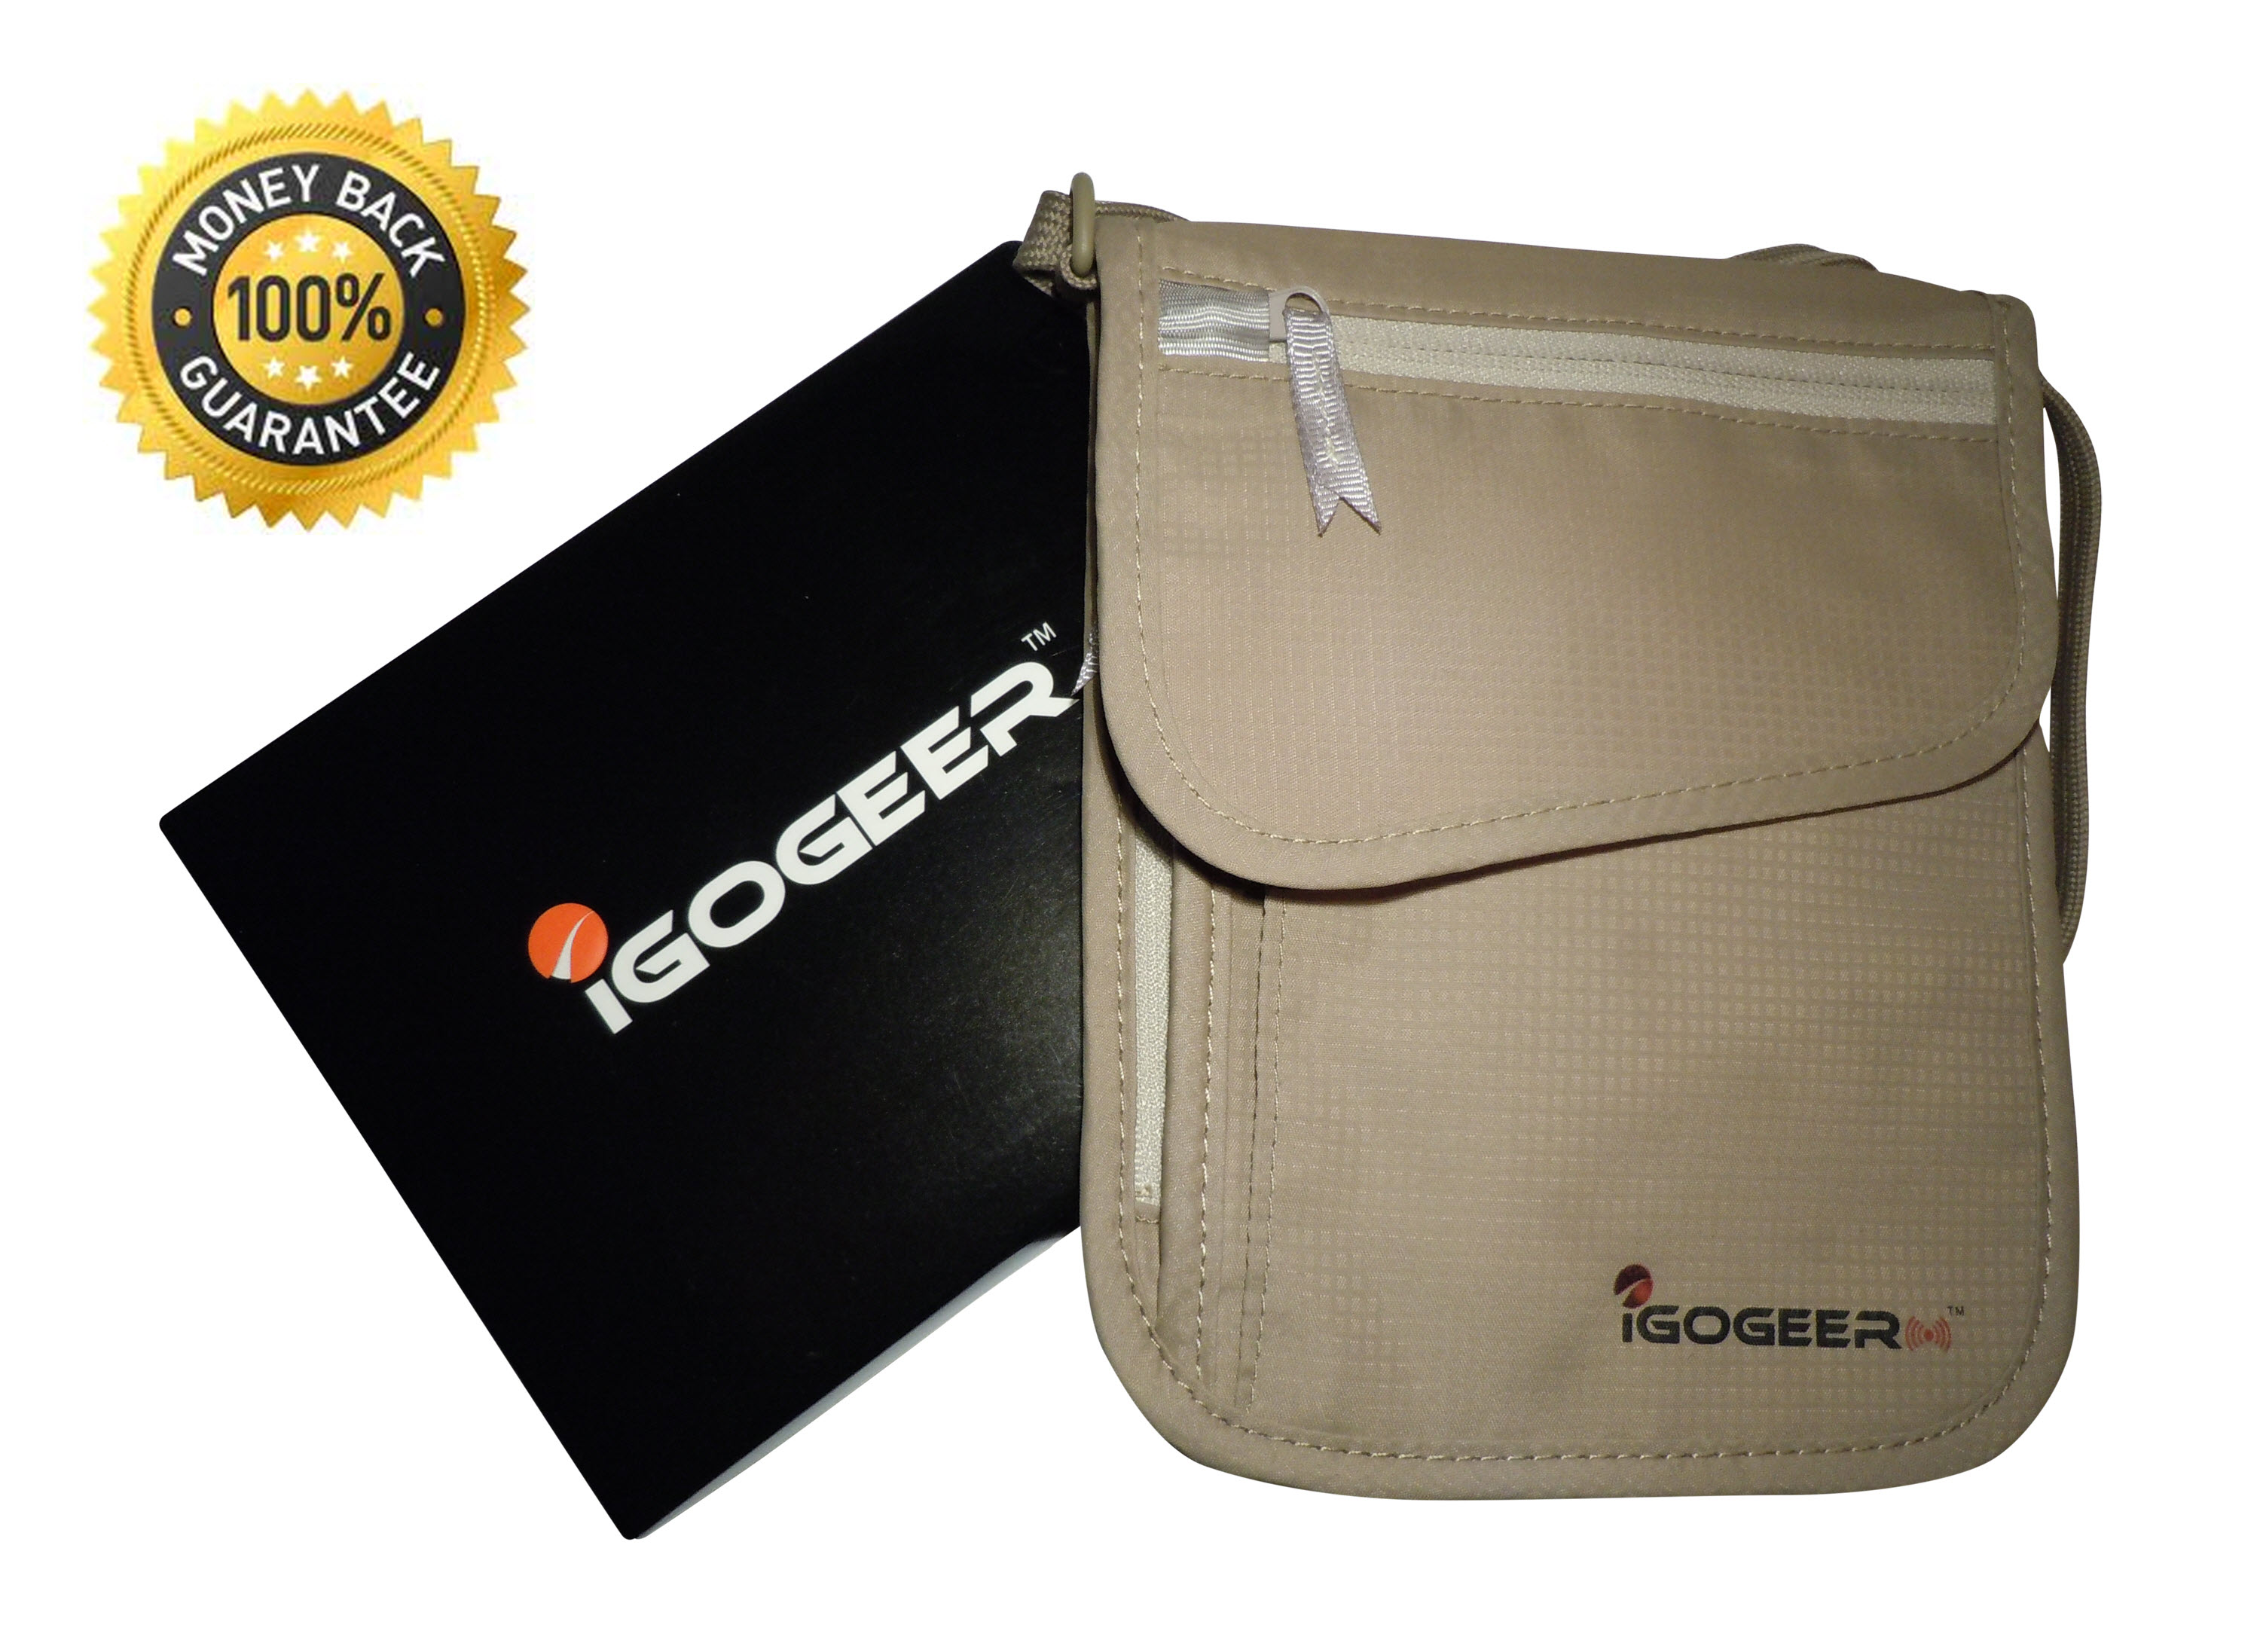 Igogeer Deluxe Neck Wallet With Rfid Blocking For Stopping